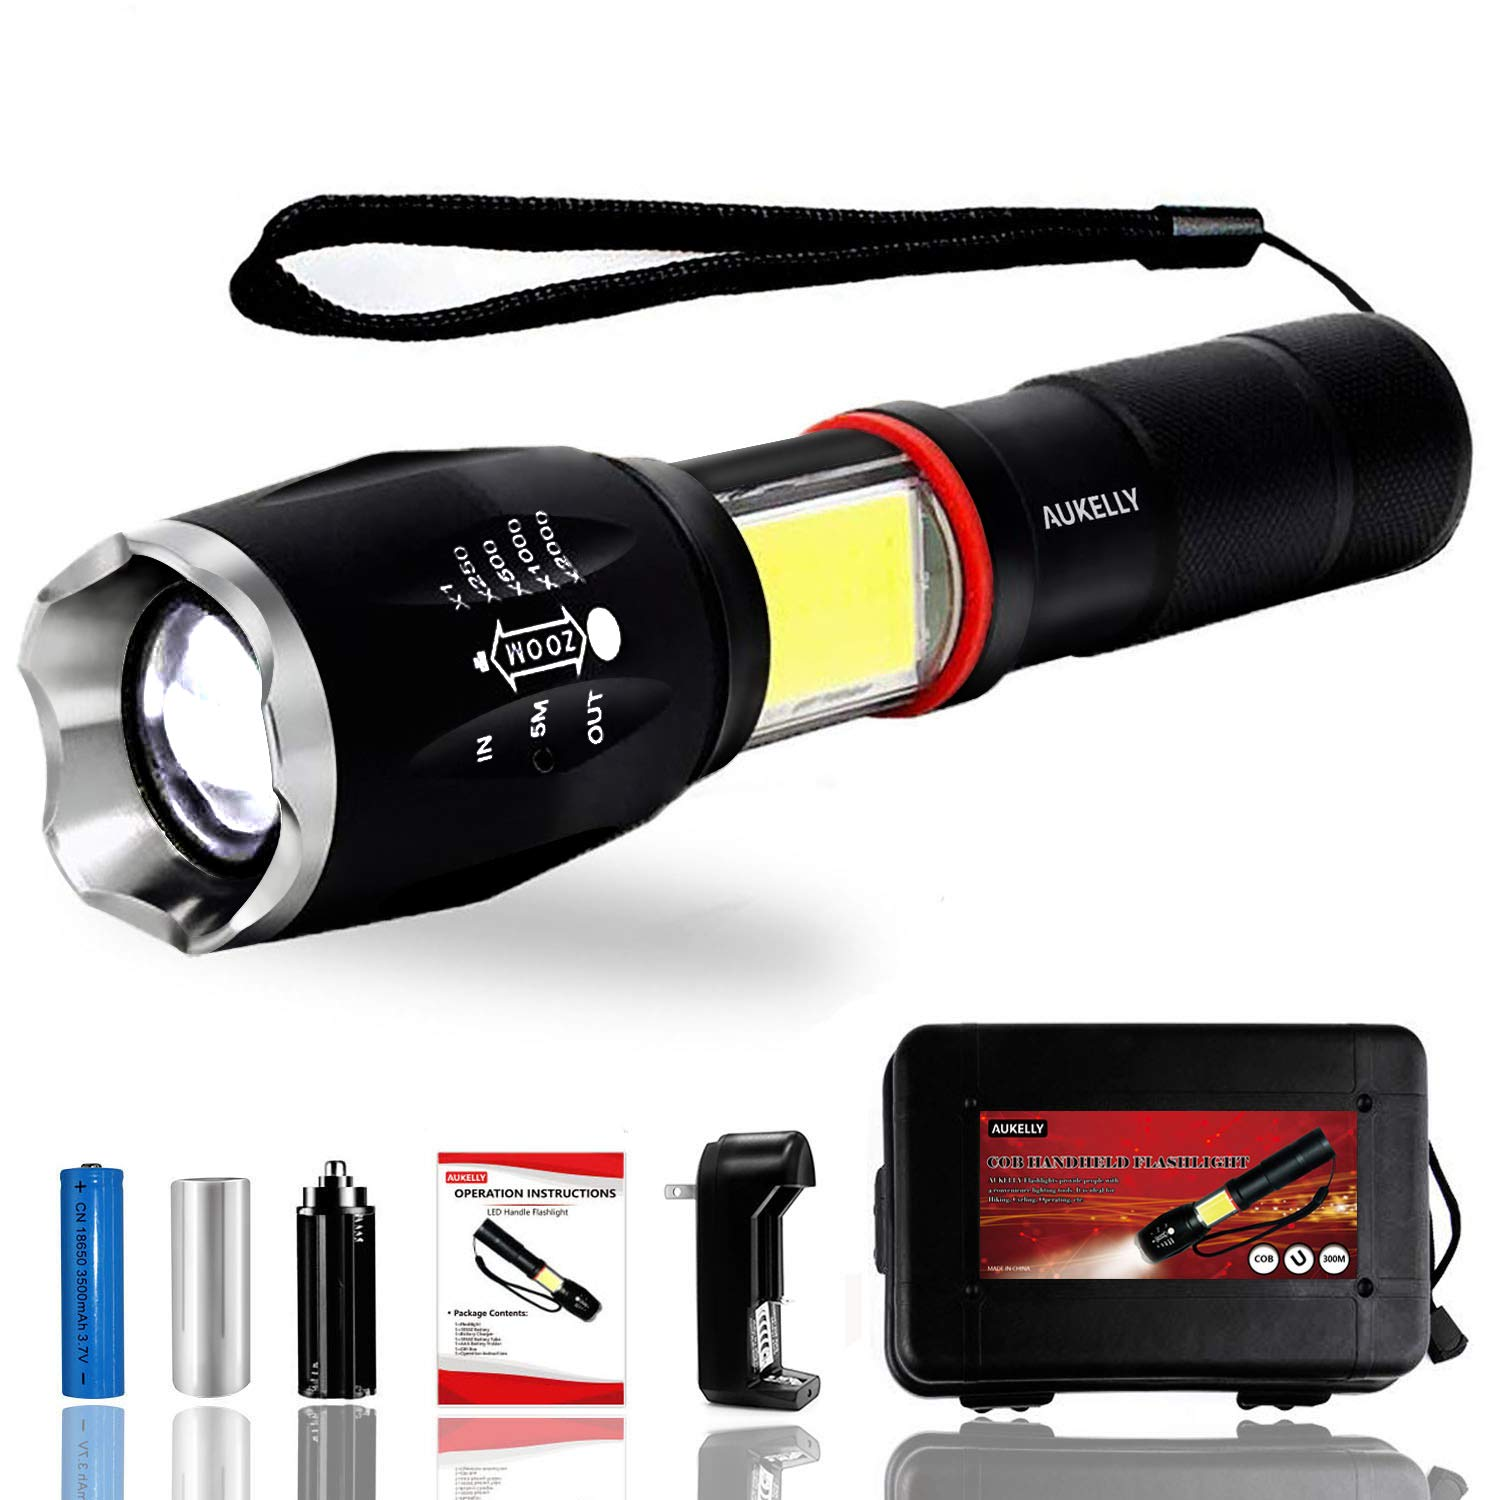 Aukelly LED Flashlight Rechargeable High Lumens Tactical Flashlight,Waterproof,Handheld,Zoomable,Altra Bright Flashlights,Ideal for Camping,Emergency,with 18650 Battery and Charger